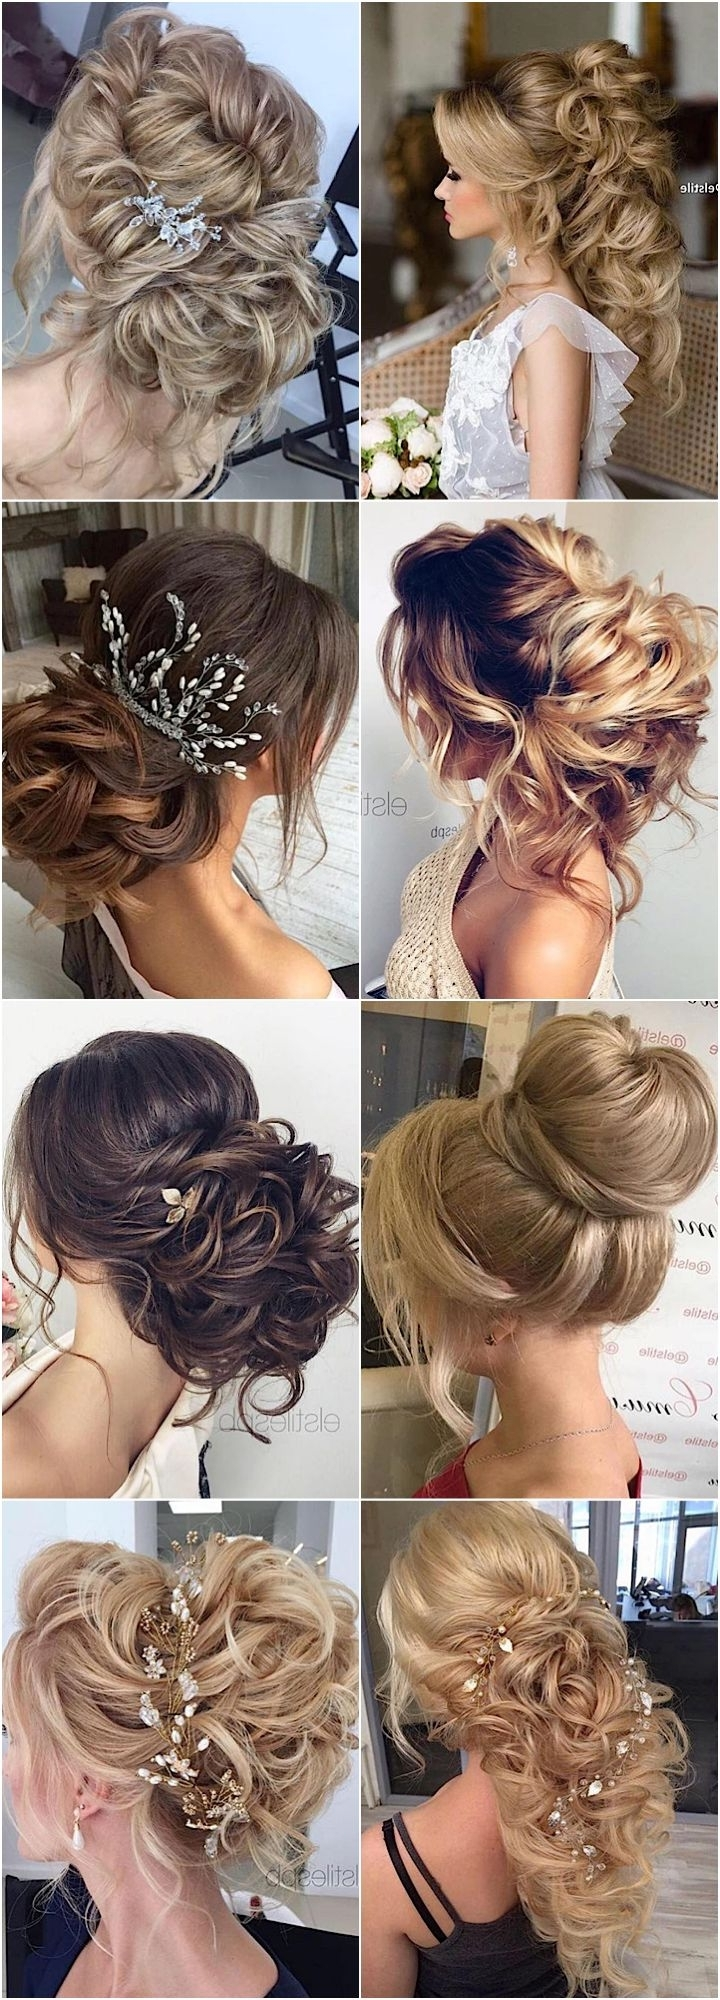 Bridal Hairstyles, Wedding Hair Within Well Known Elstile Wedding Hairstyles For Long Hair (View 5 of 15)